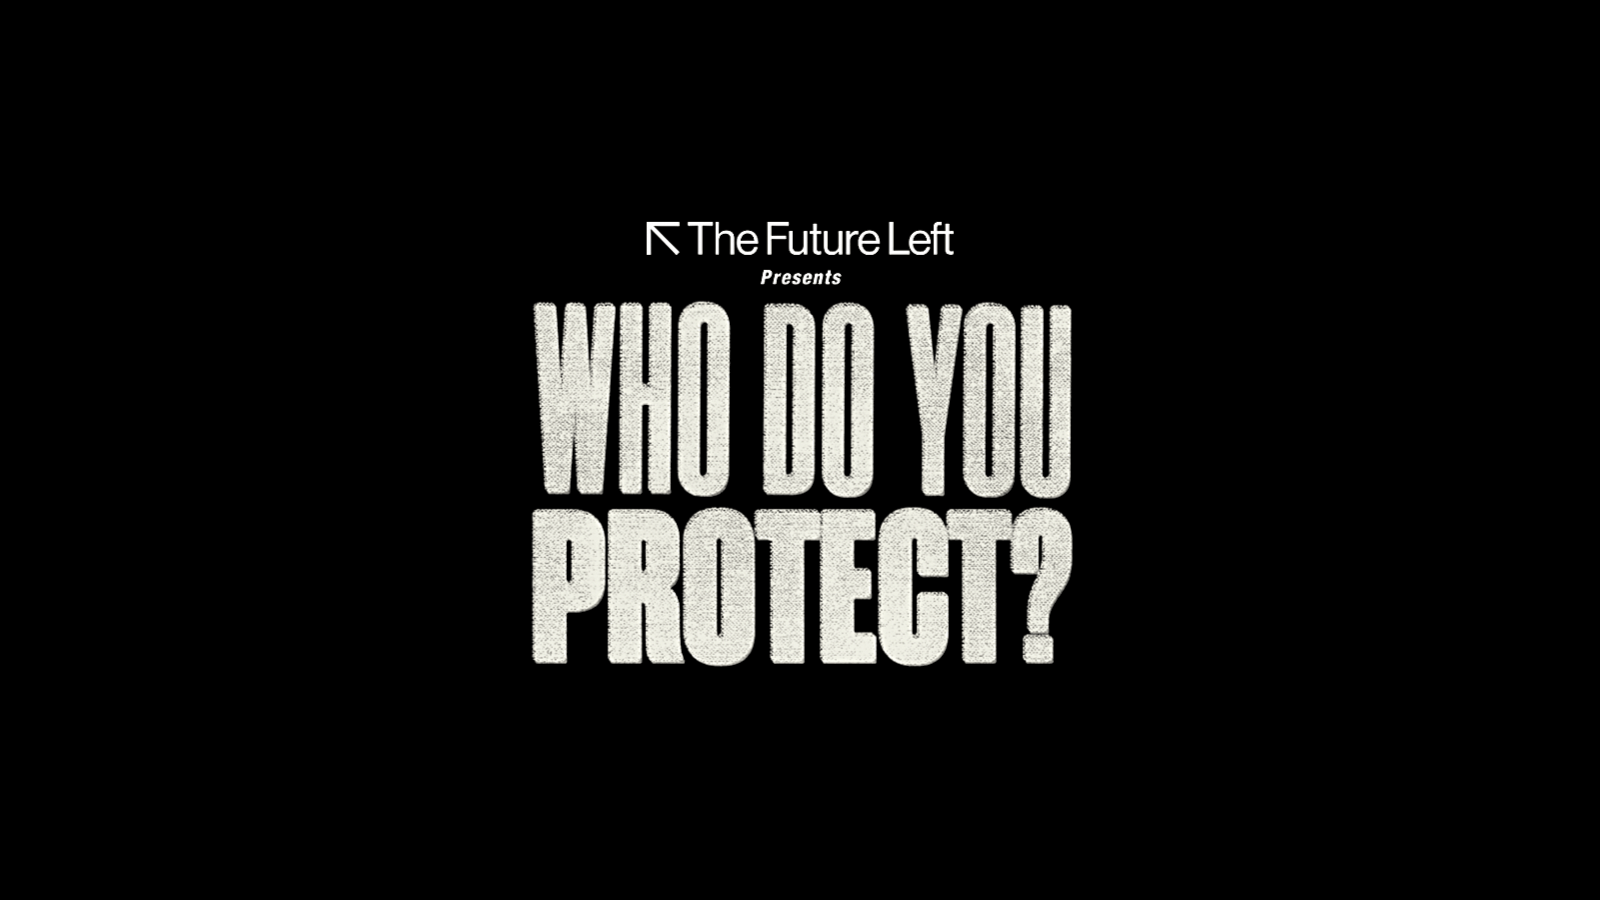 The Future Left presents Who Do You Protect?